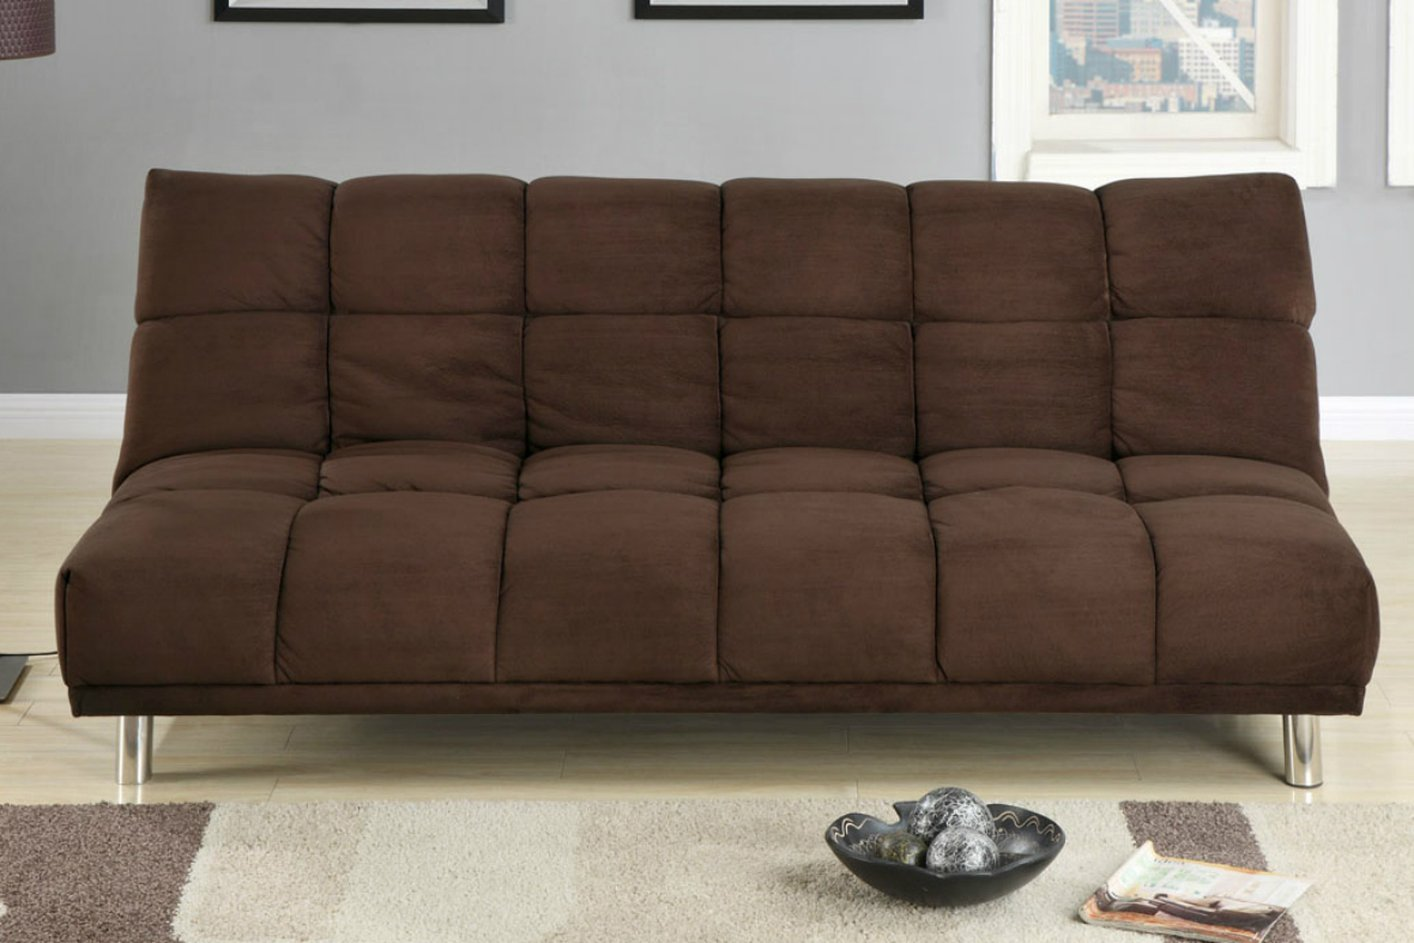 Steal A Sofa Furniture Outlet: Brown Fabric Twin Size Sofa Bed